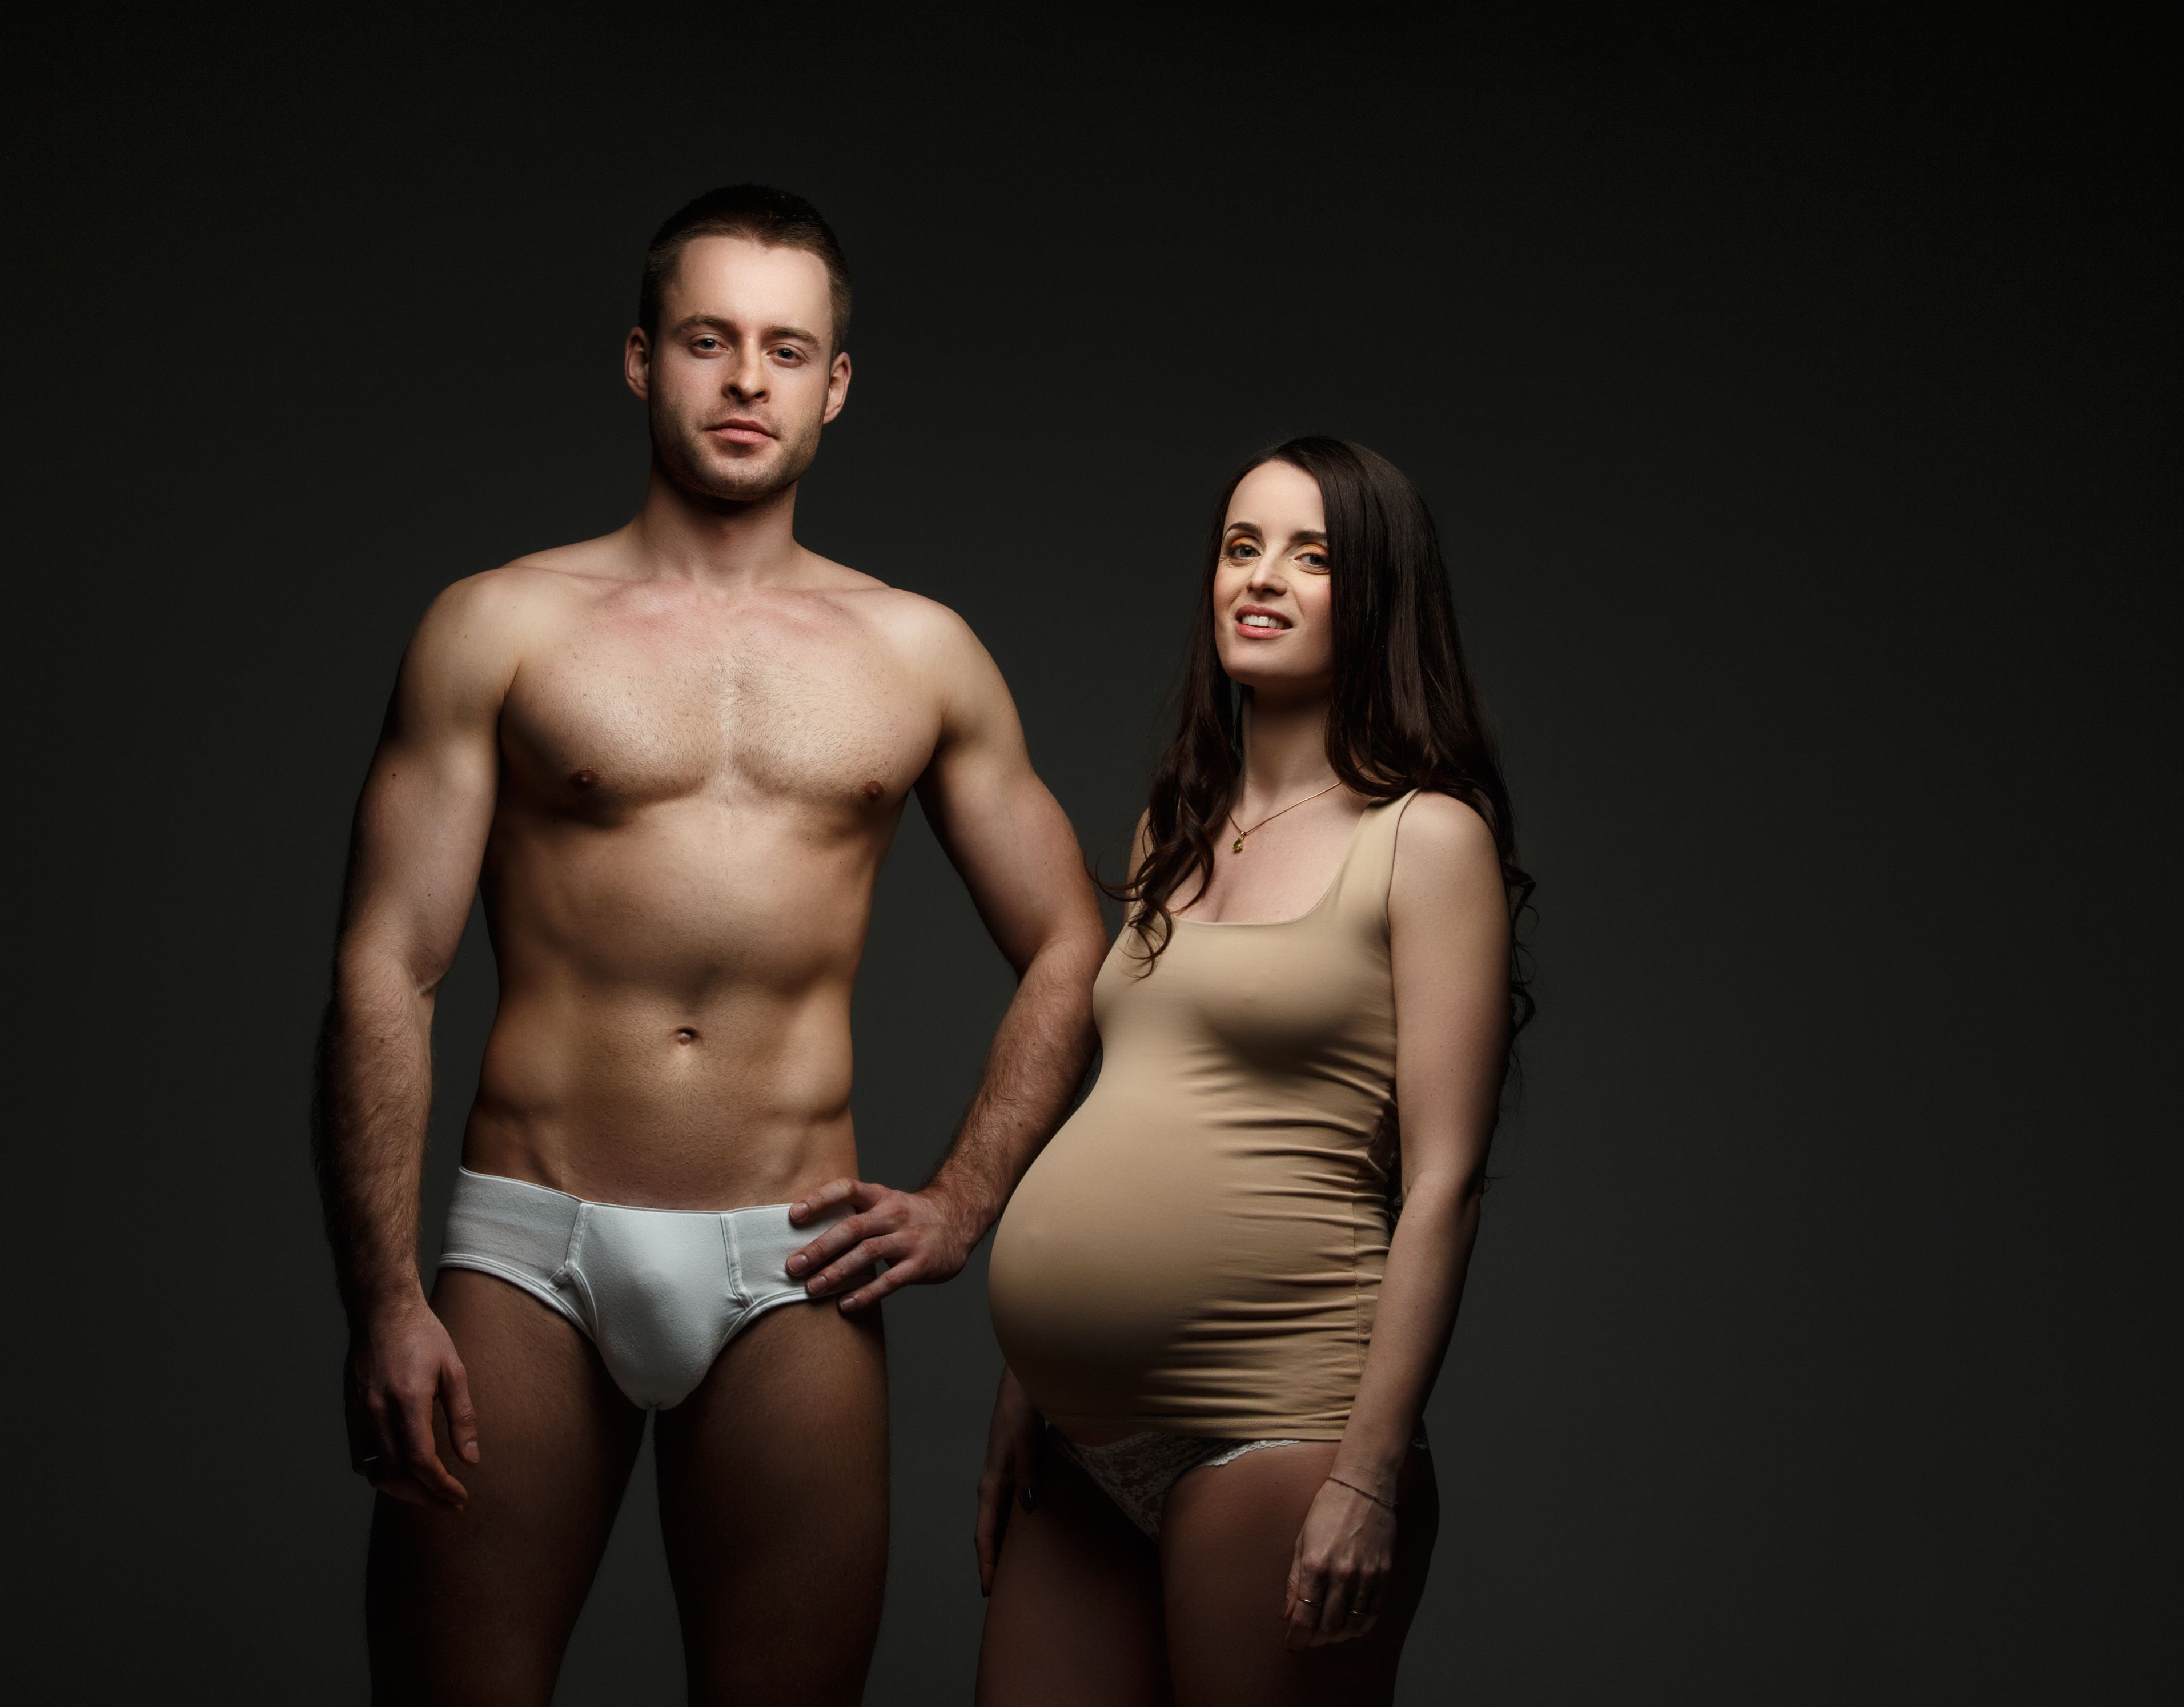 Getting Frisky During Pregnancy: The Good, The Bad and The Ugly